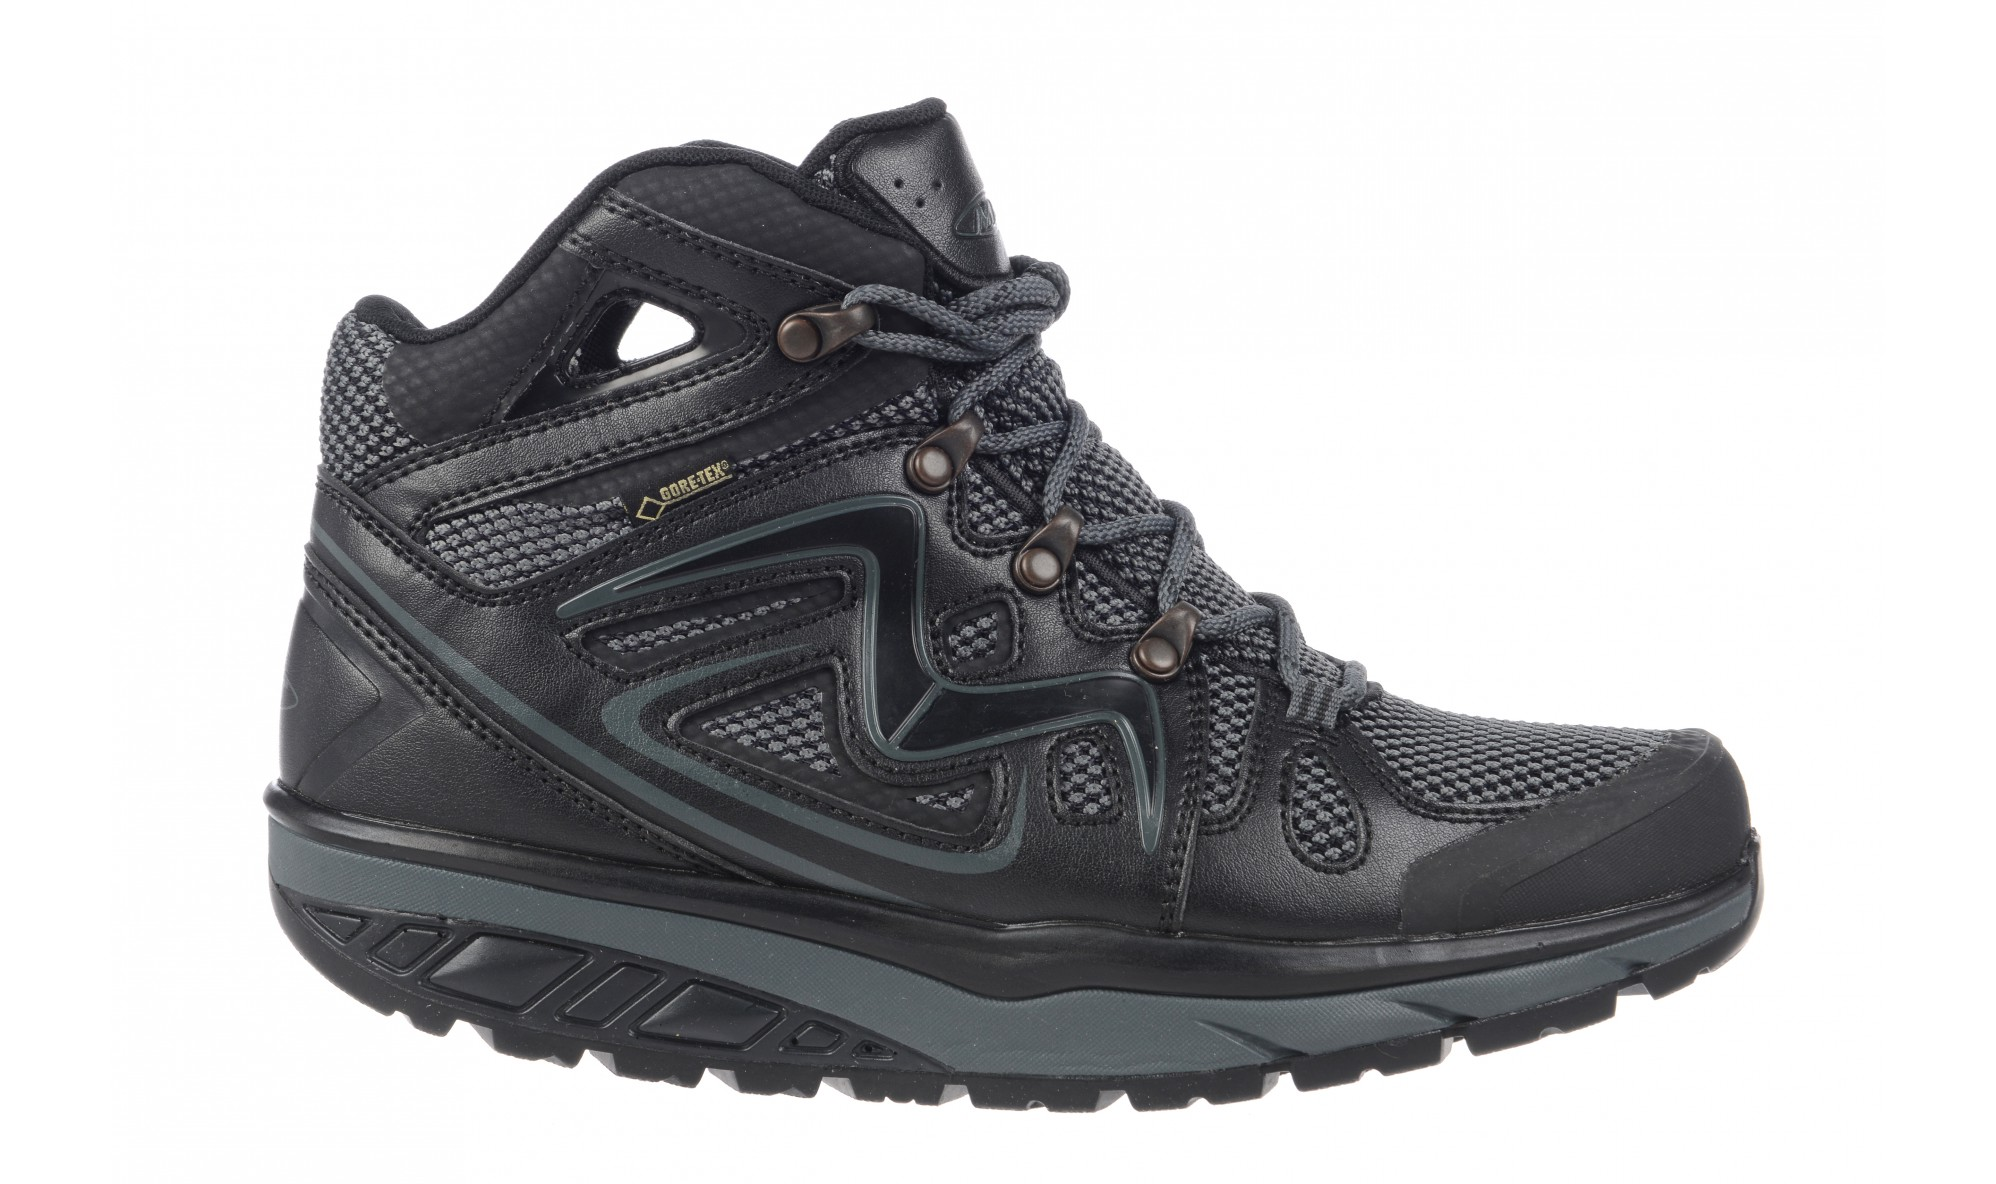 MBT Women's Adisa GTX Black